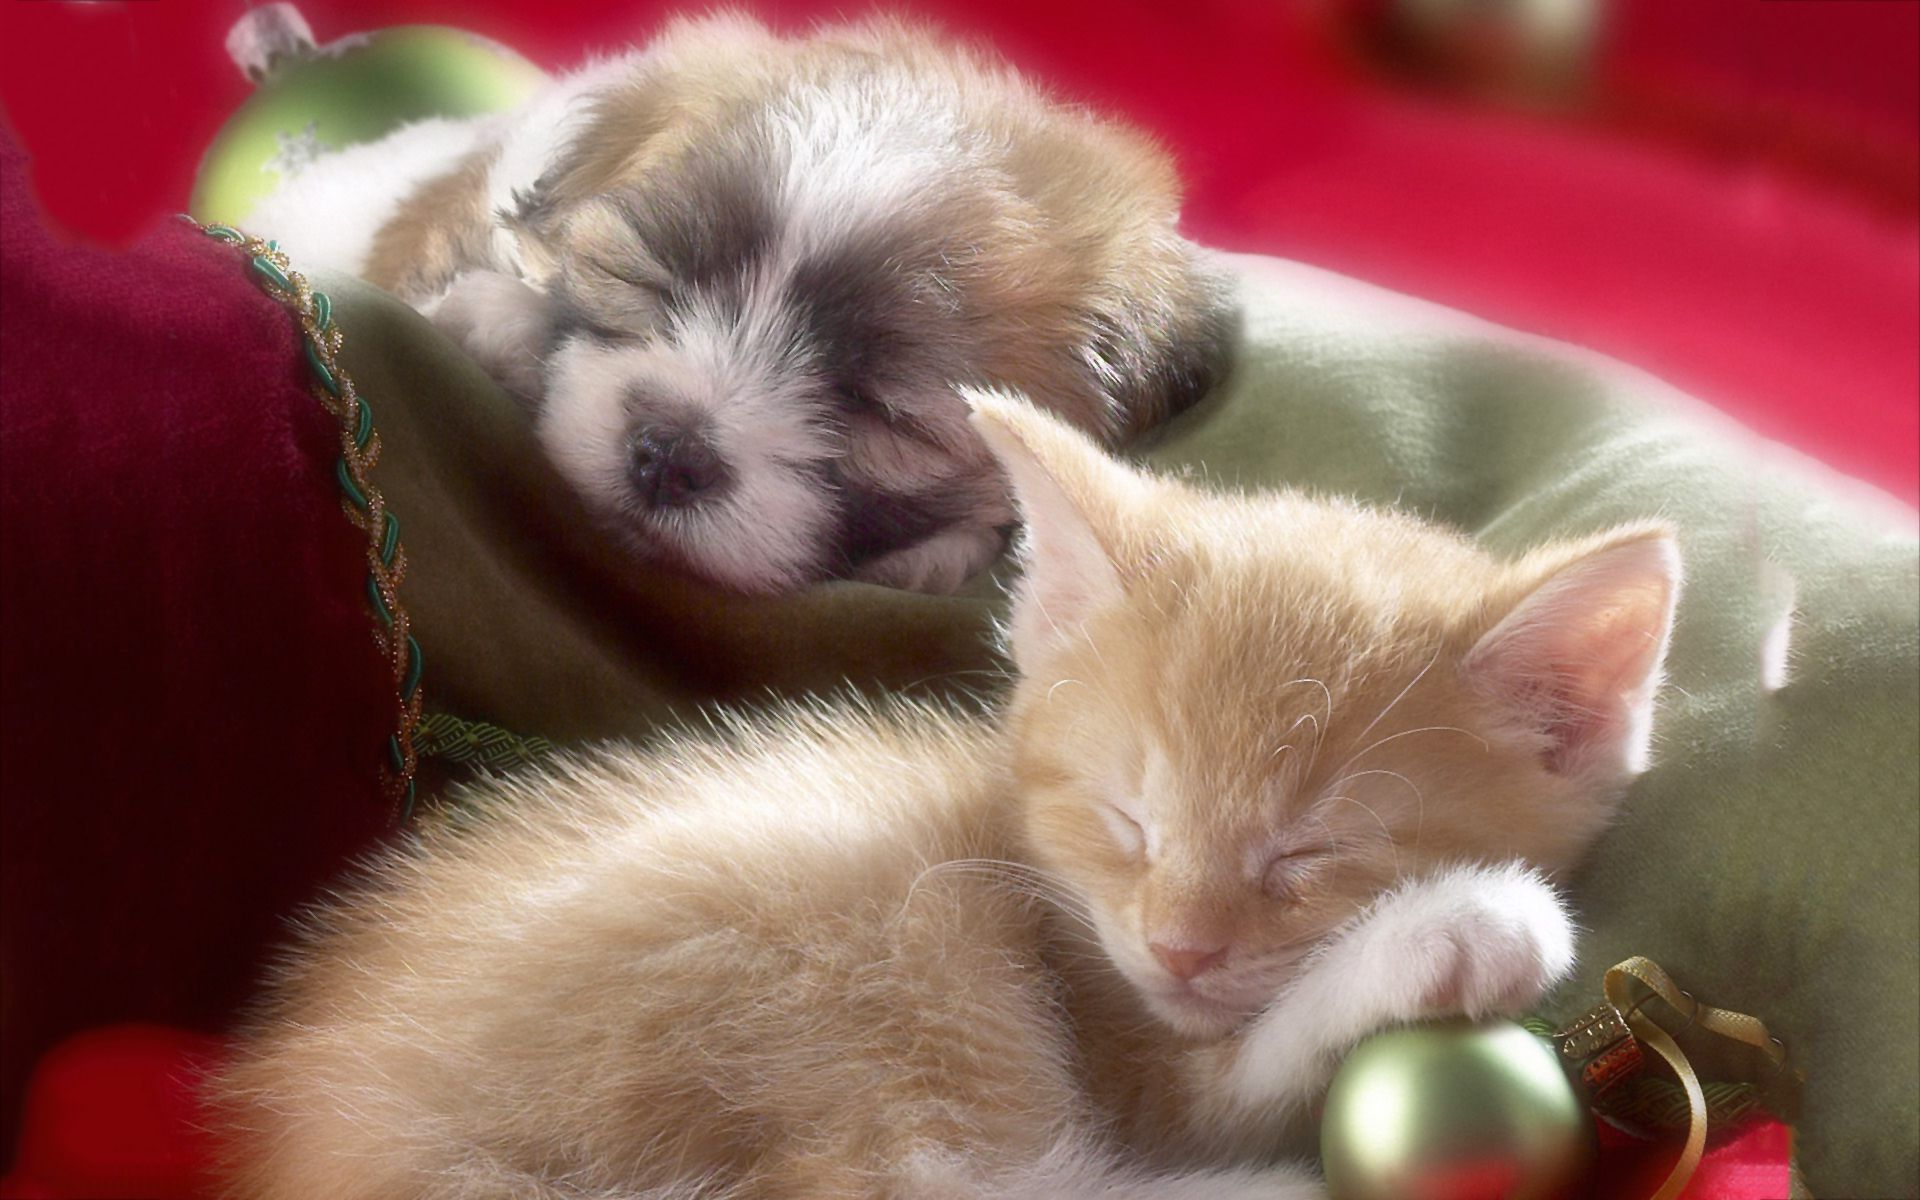 Kitten And Puppy Wallpapers High Quality Resolution Kittens And Puppies Puppy Wallpaper Baby Animals